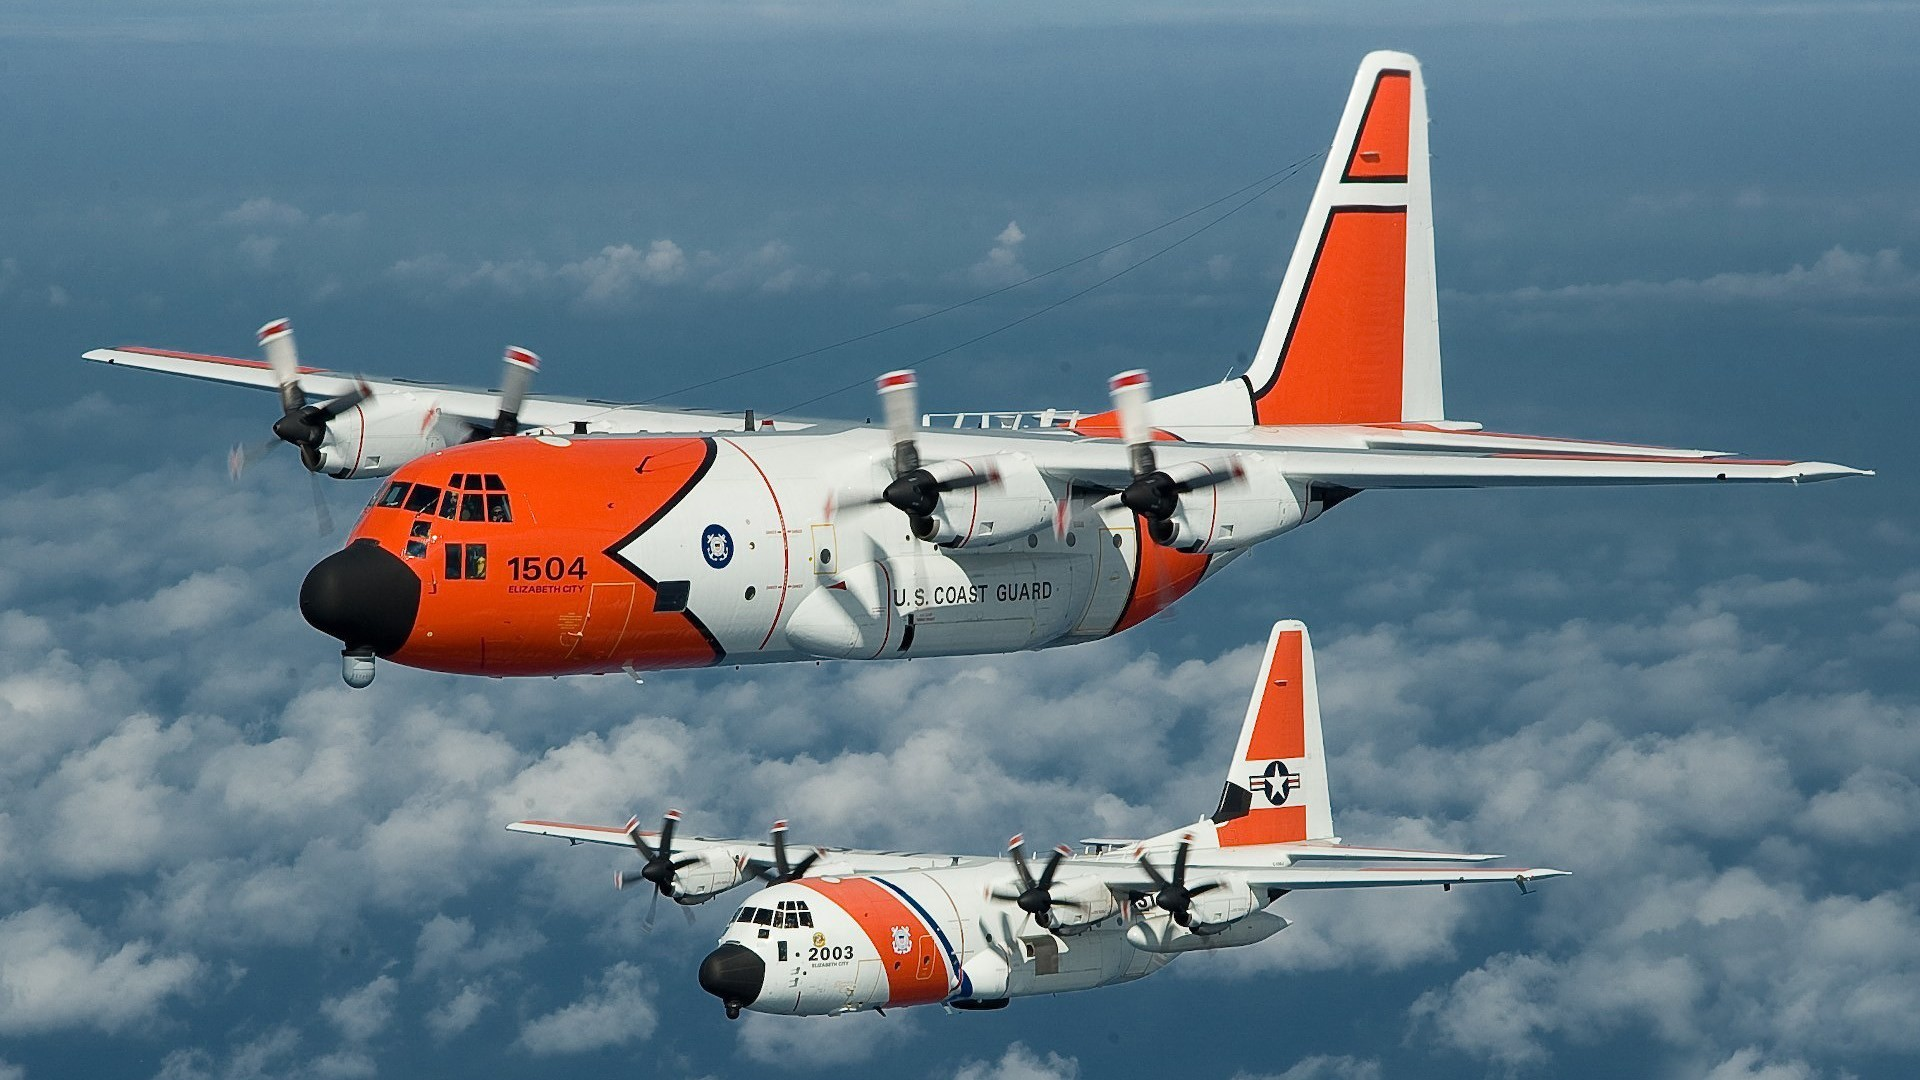 C-130 Hercules Lockheed C-130 Hercules US Coast Guard aircraft